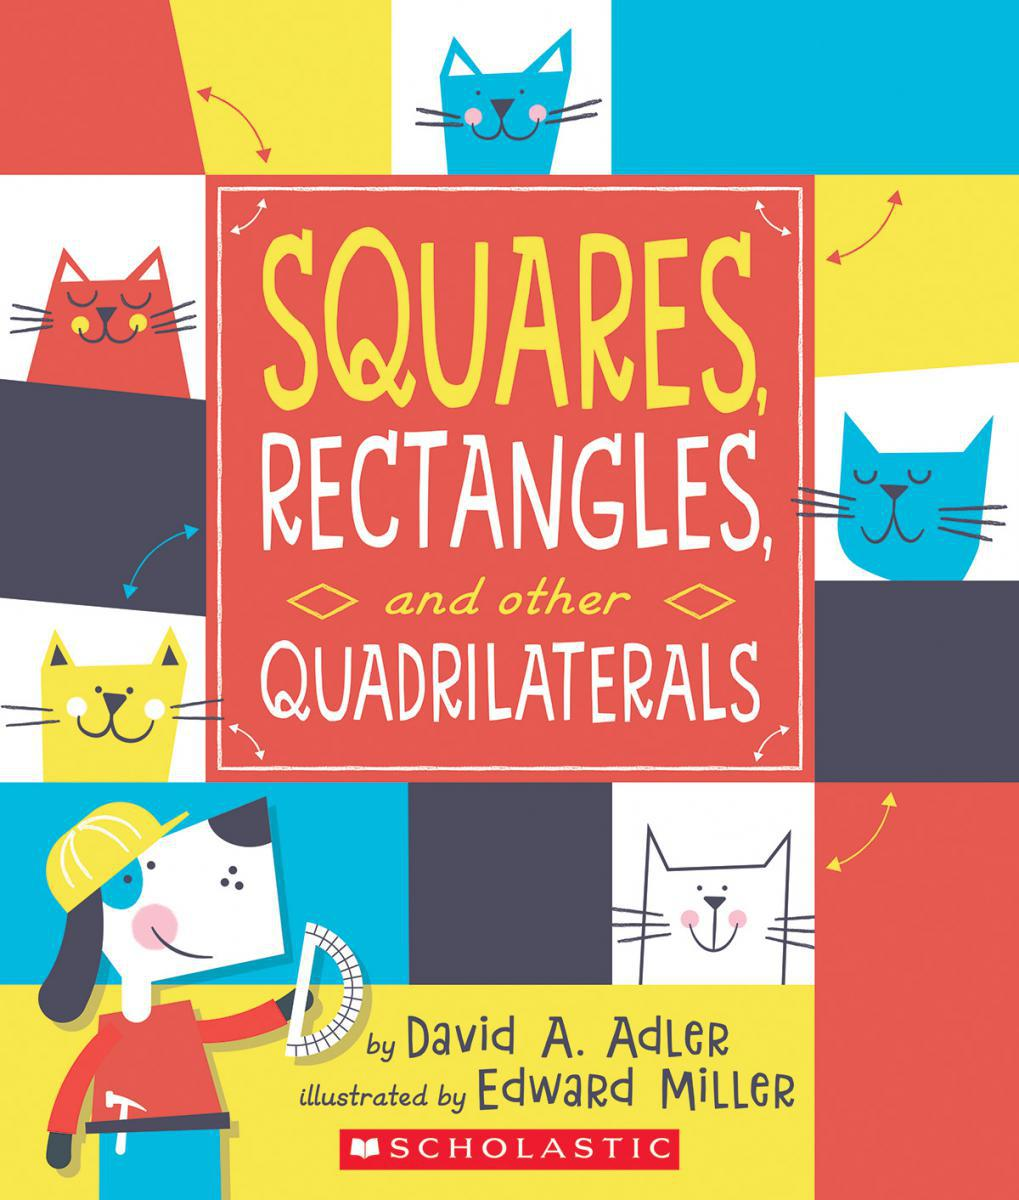 Squares, Rectangles, and Other Quadrilaterals